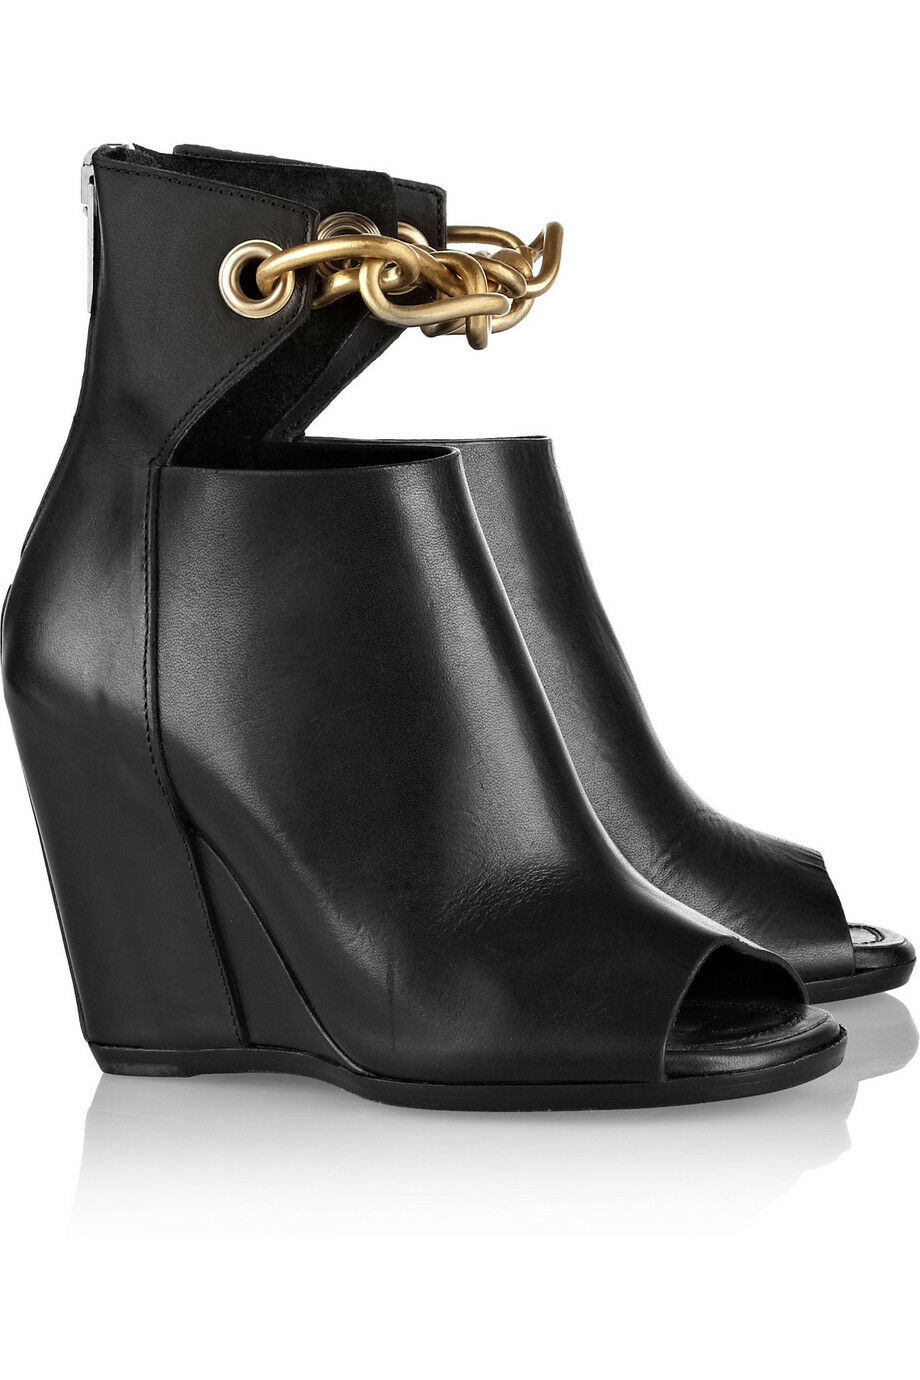 1,987.20 AUTH NIB RICK OWENS Chain-trimmed leather wedge ankle boots Sz 36